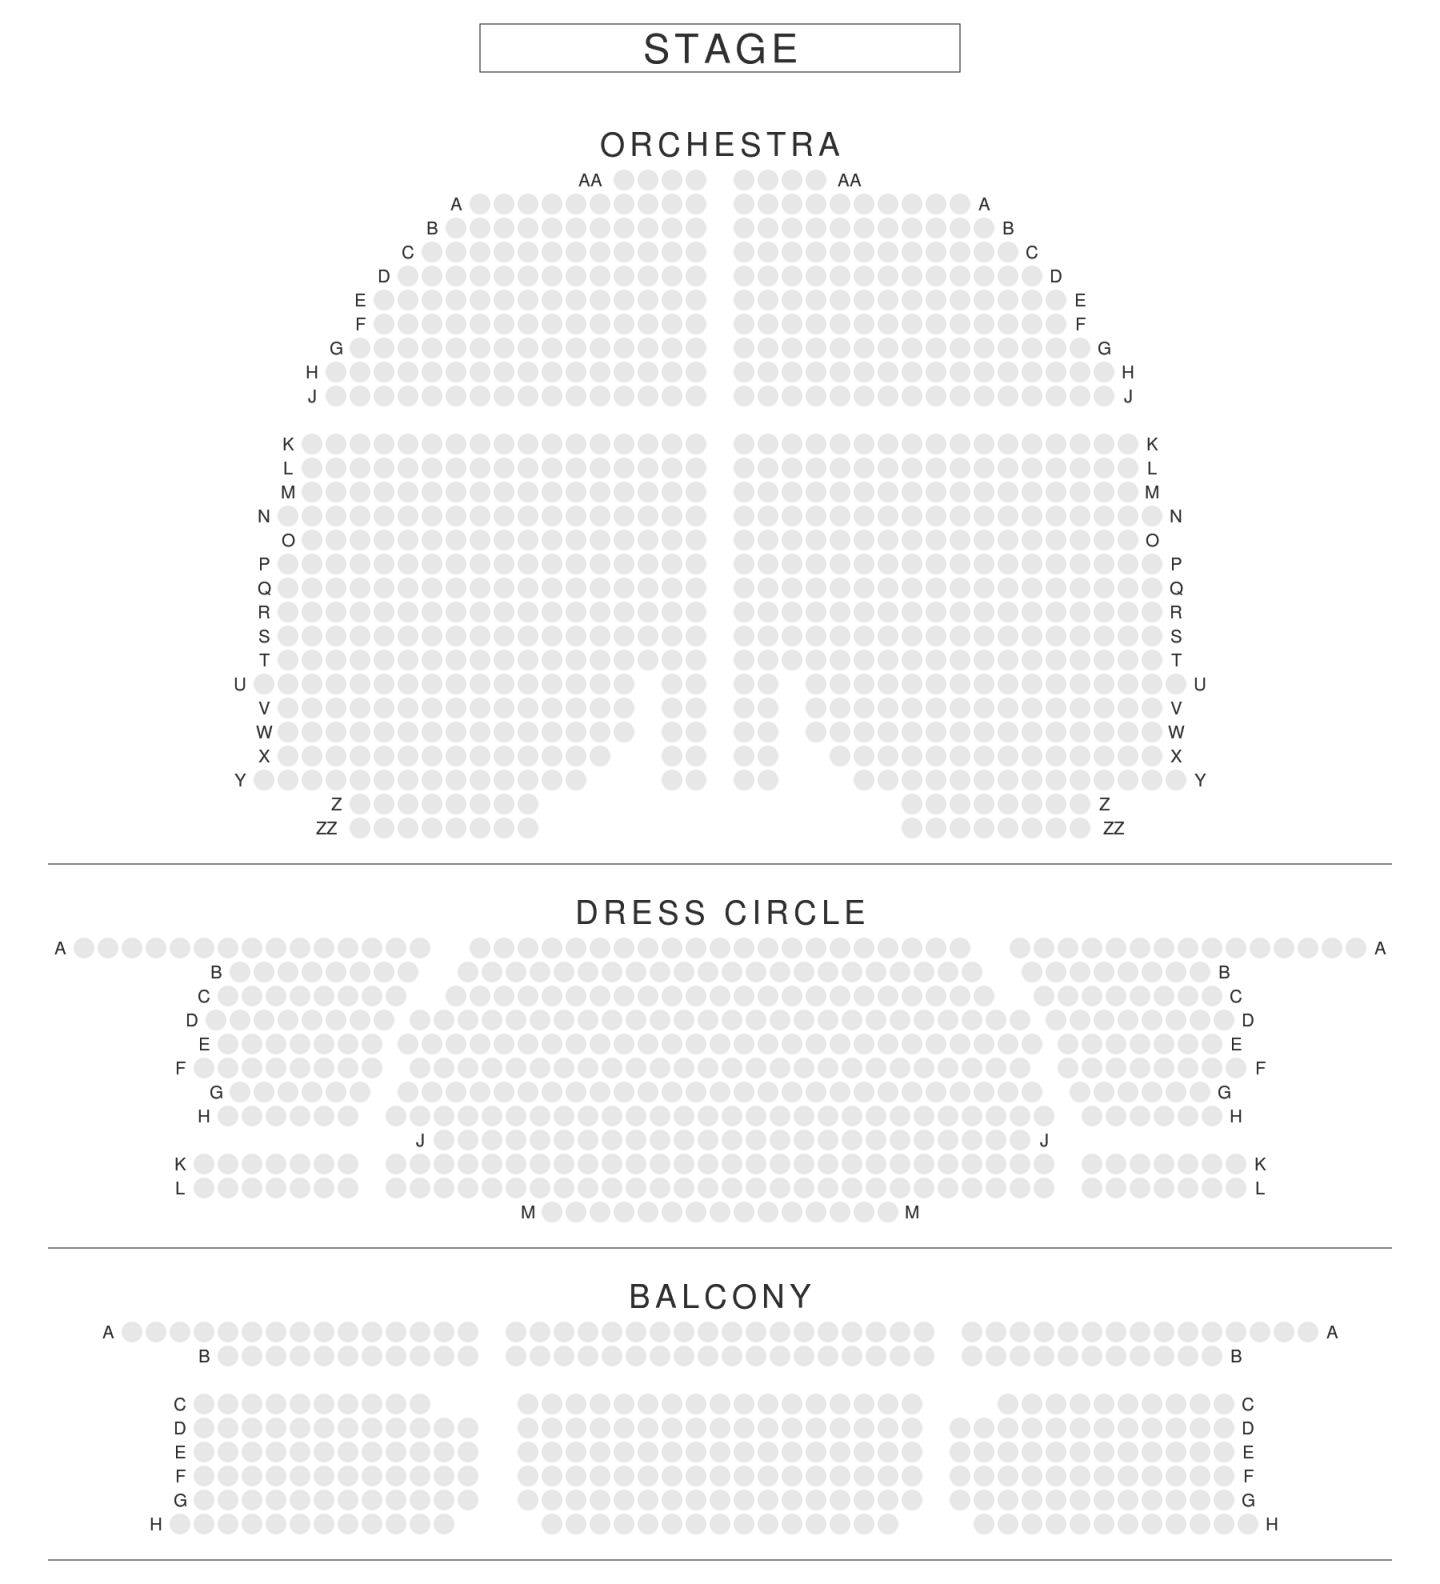 Lyric Theatre Seating Chart  View From Seat  New York  Seatplan von Lyric Opera Seating Chart Bild